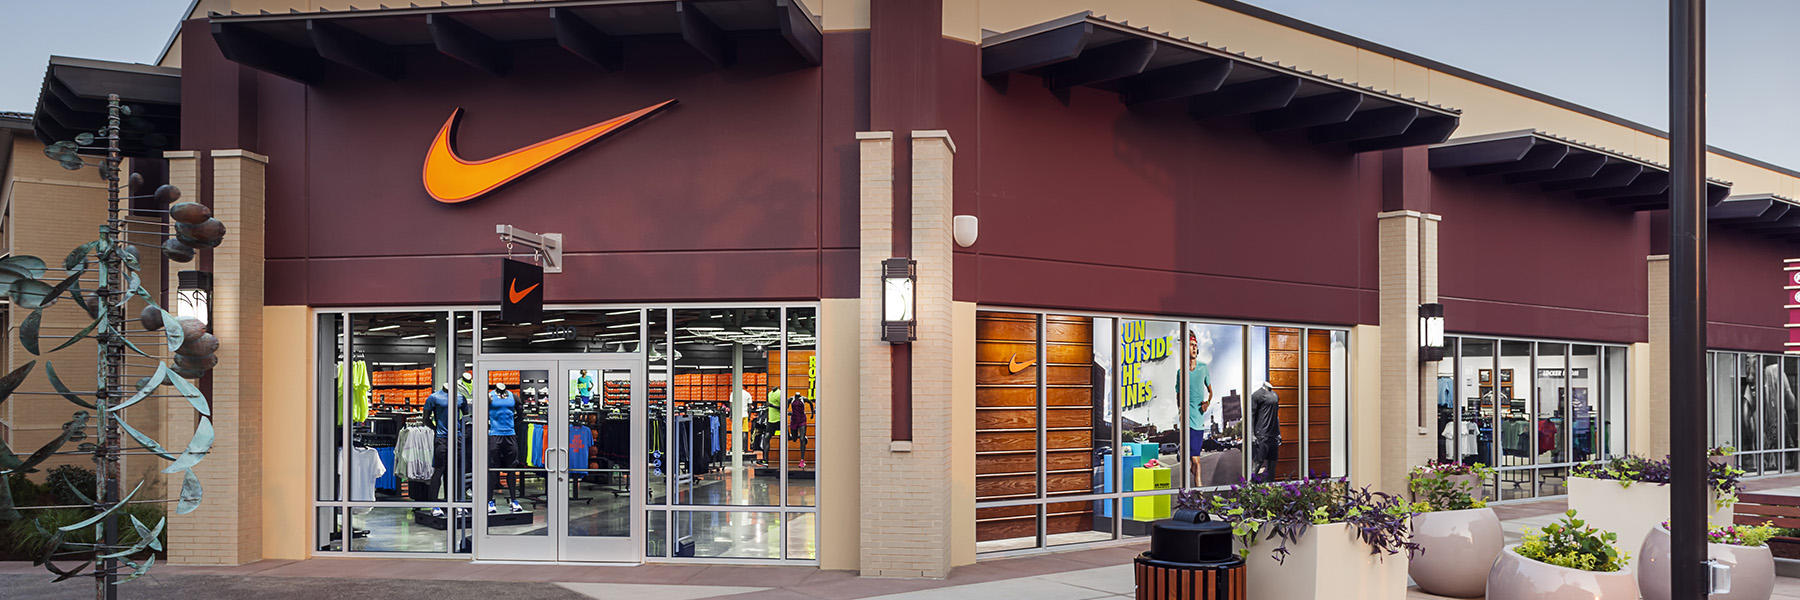 cd5a3f4a5d9d31 Nike Factory Store - Chesterfield. Chesterfield